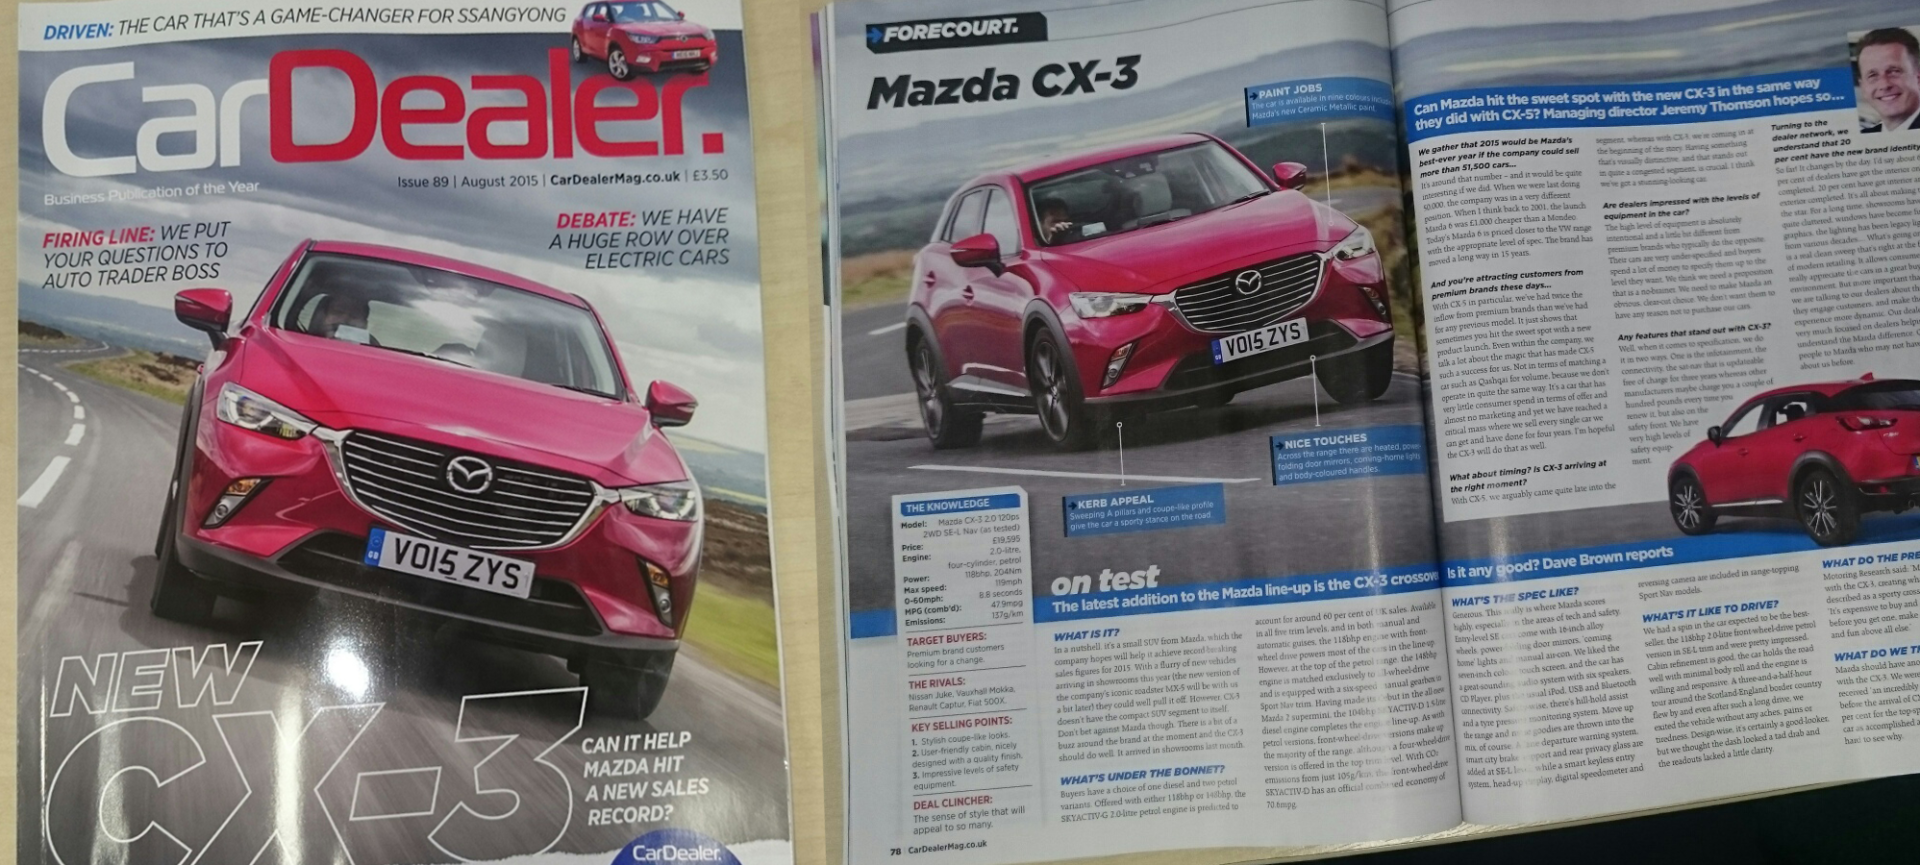 Mazda CX-3 review by Car Dealer Magazine